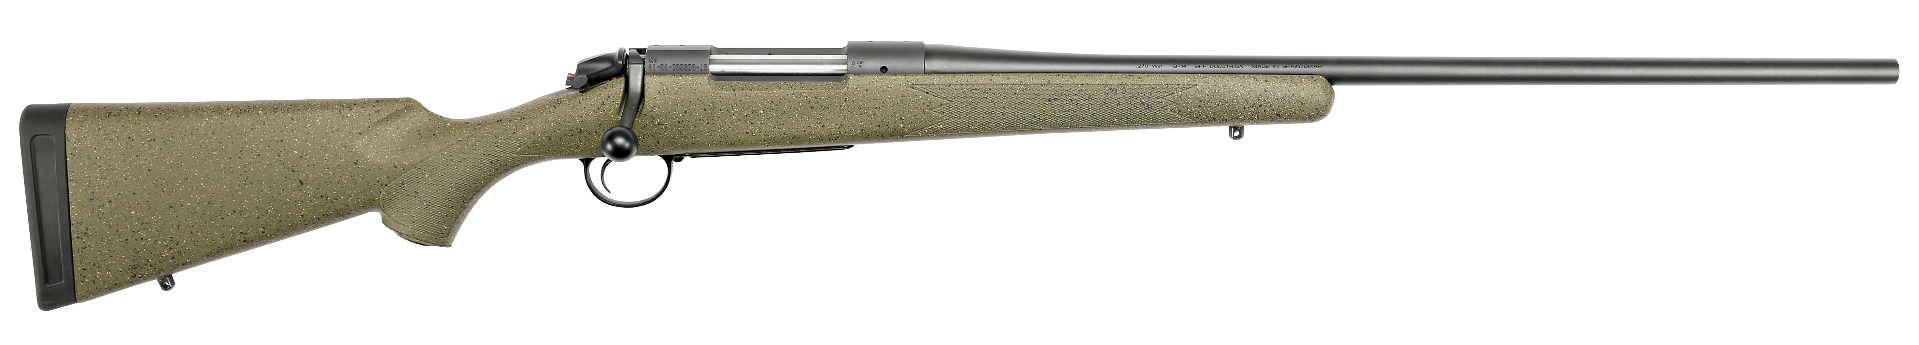 Bergara HUNTER 6.5 CREEDMOOR